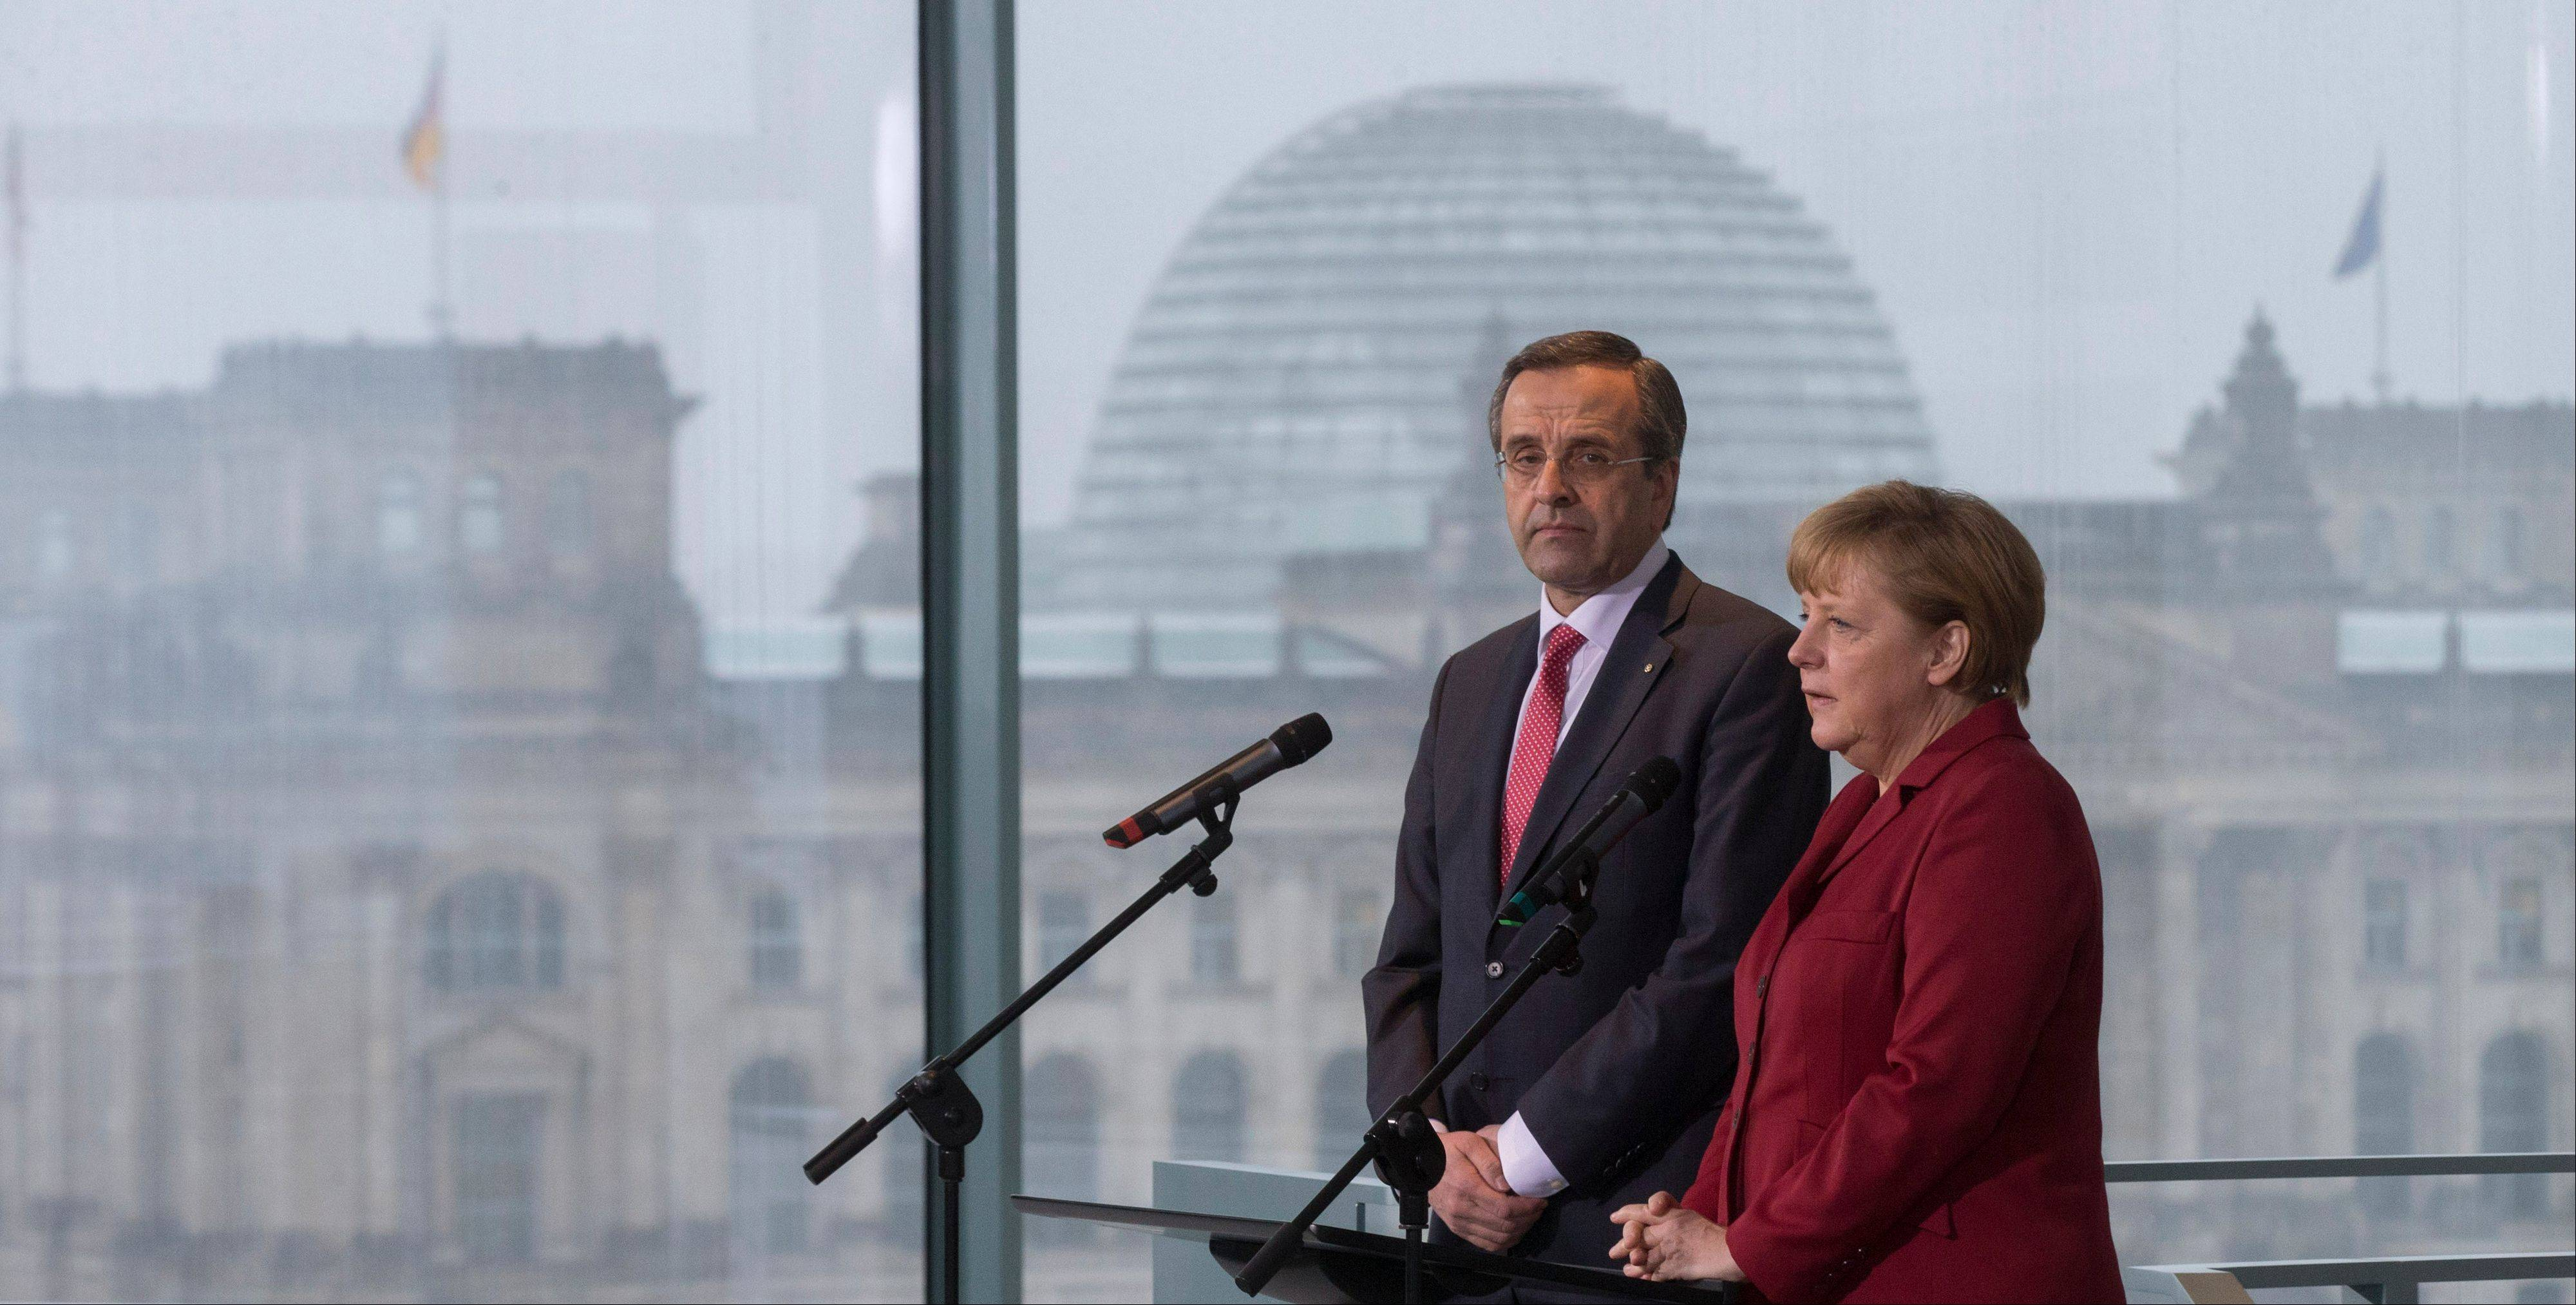 German Chancellor Angela Merkel, right, and the Prime Minister of Greece, Antonis Samaras, give a statement Tuesday prior to a meeting at the chancellery in Berlin.